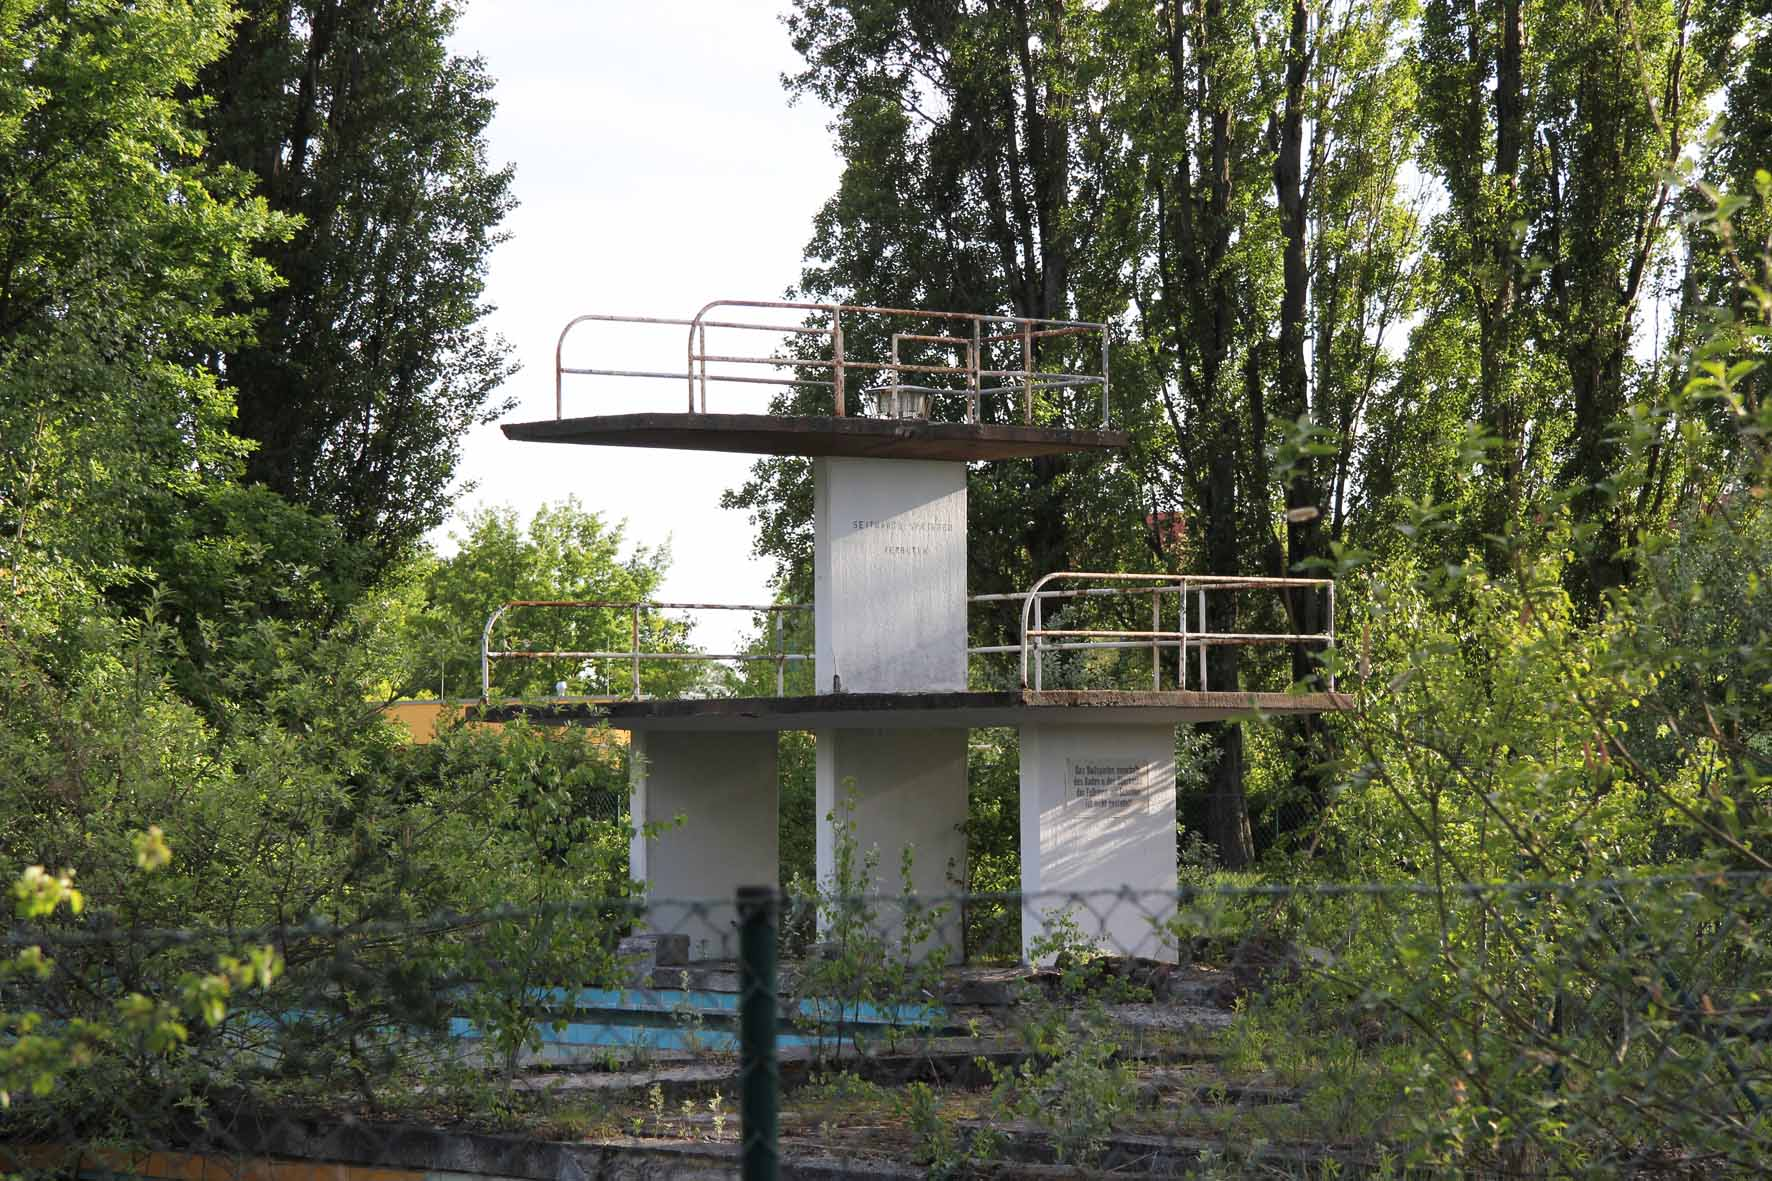 Swimmingpool Berlin Bvg Freibad An Abandoned Open Air Pool In Berlin Berlin Love